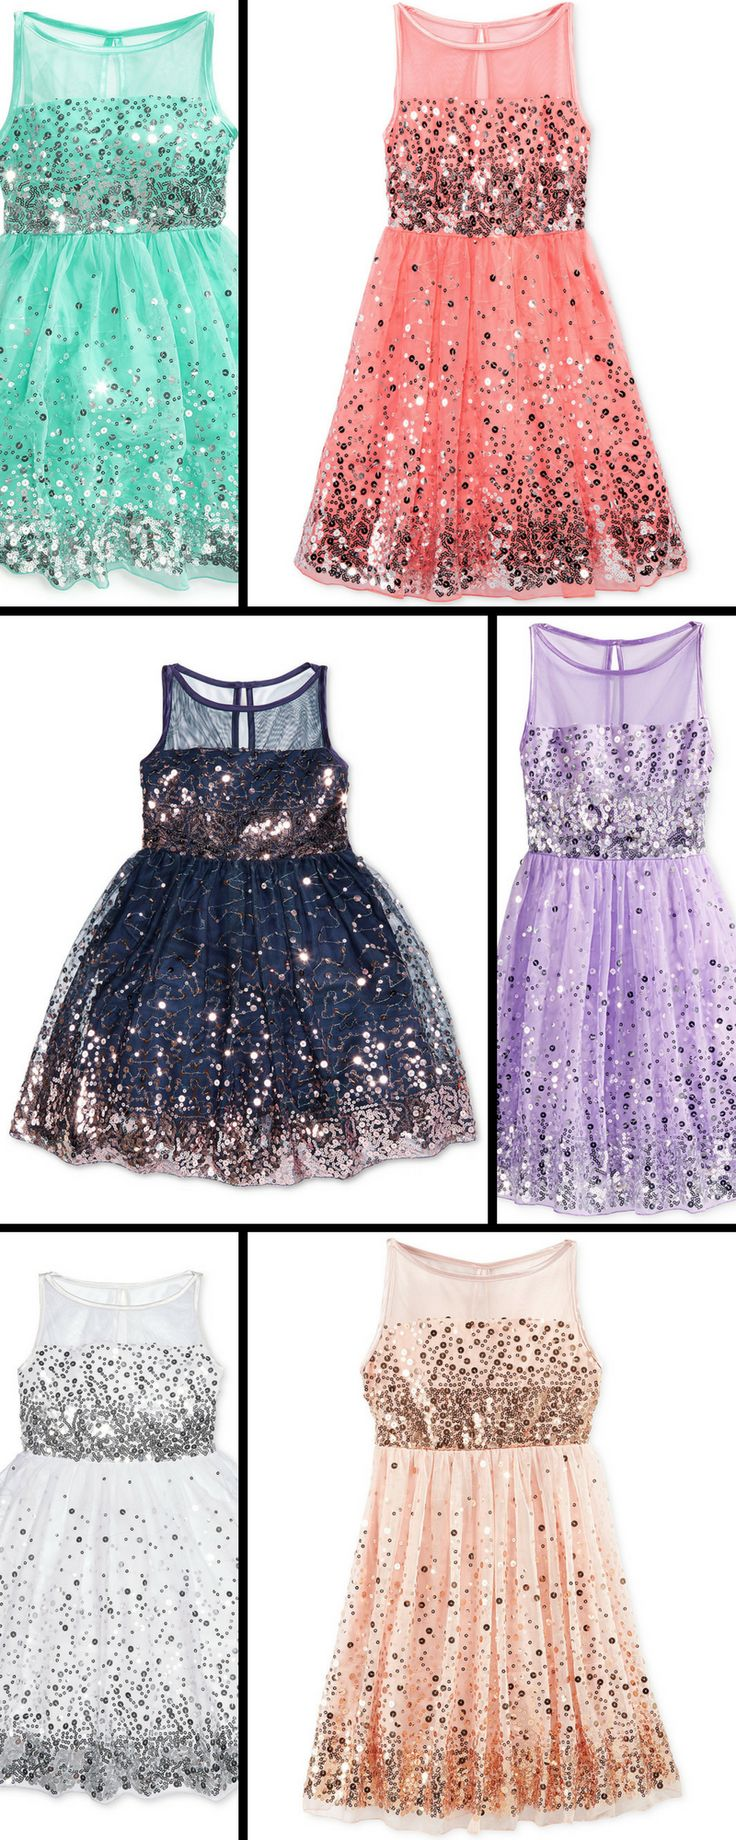 Black Friday Special!  Girls Sequin Crystal Doll Dress #macy's#dress#girls#holiday#special#ad